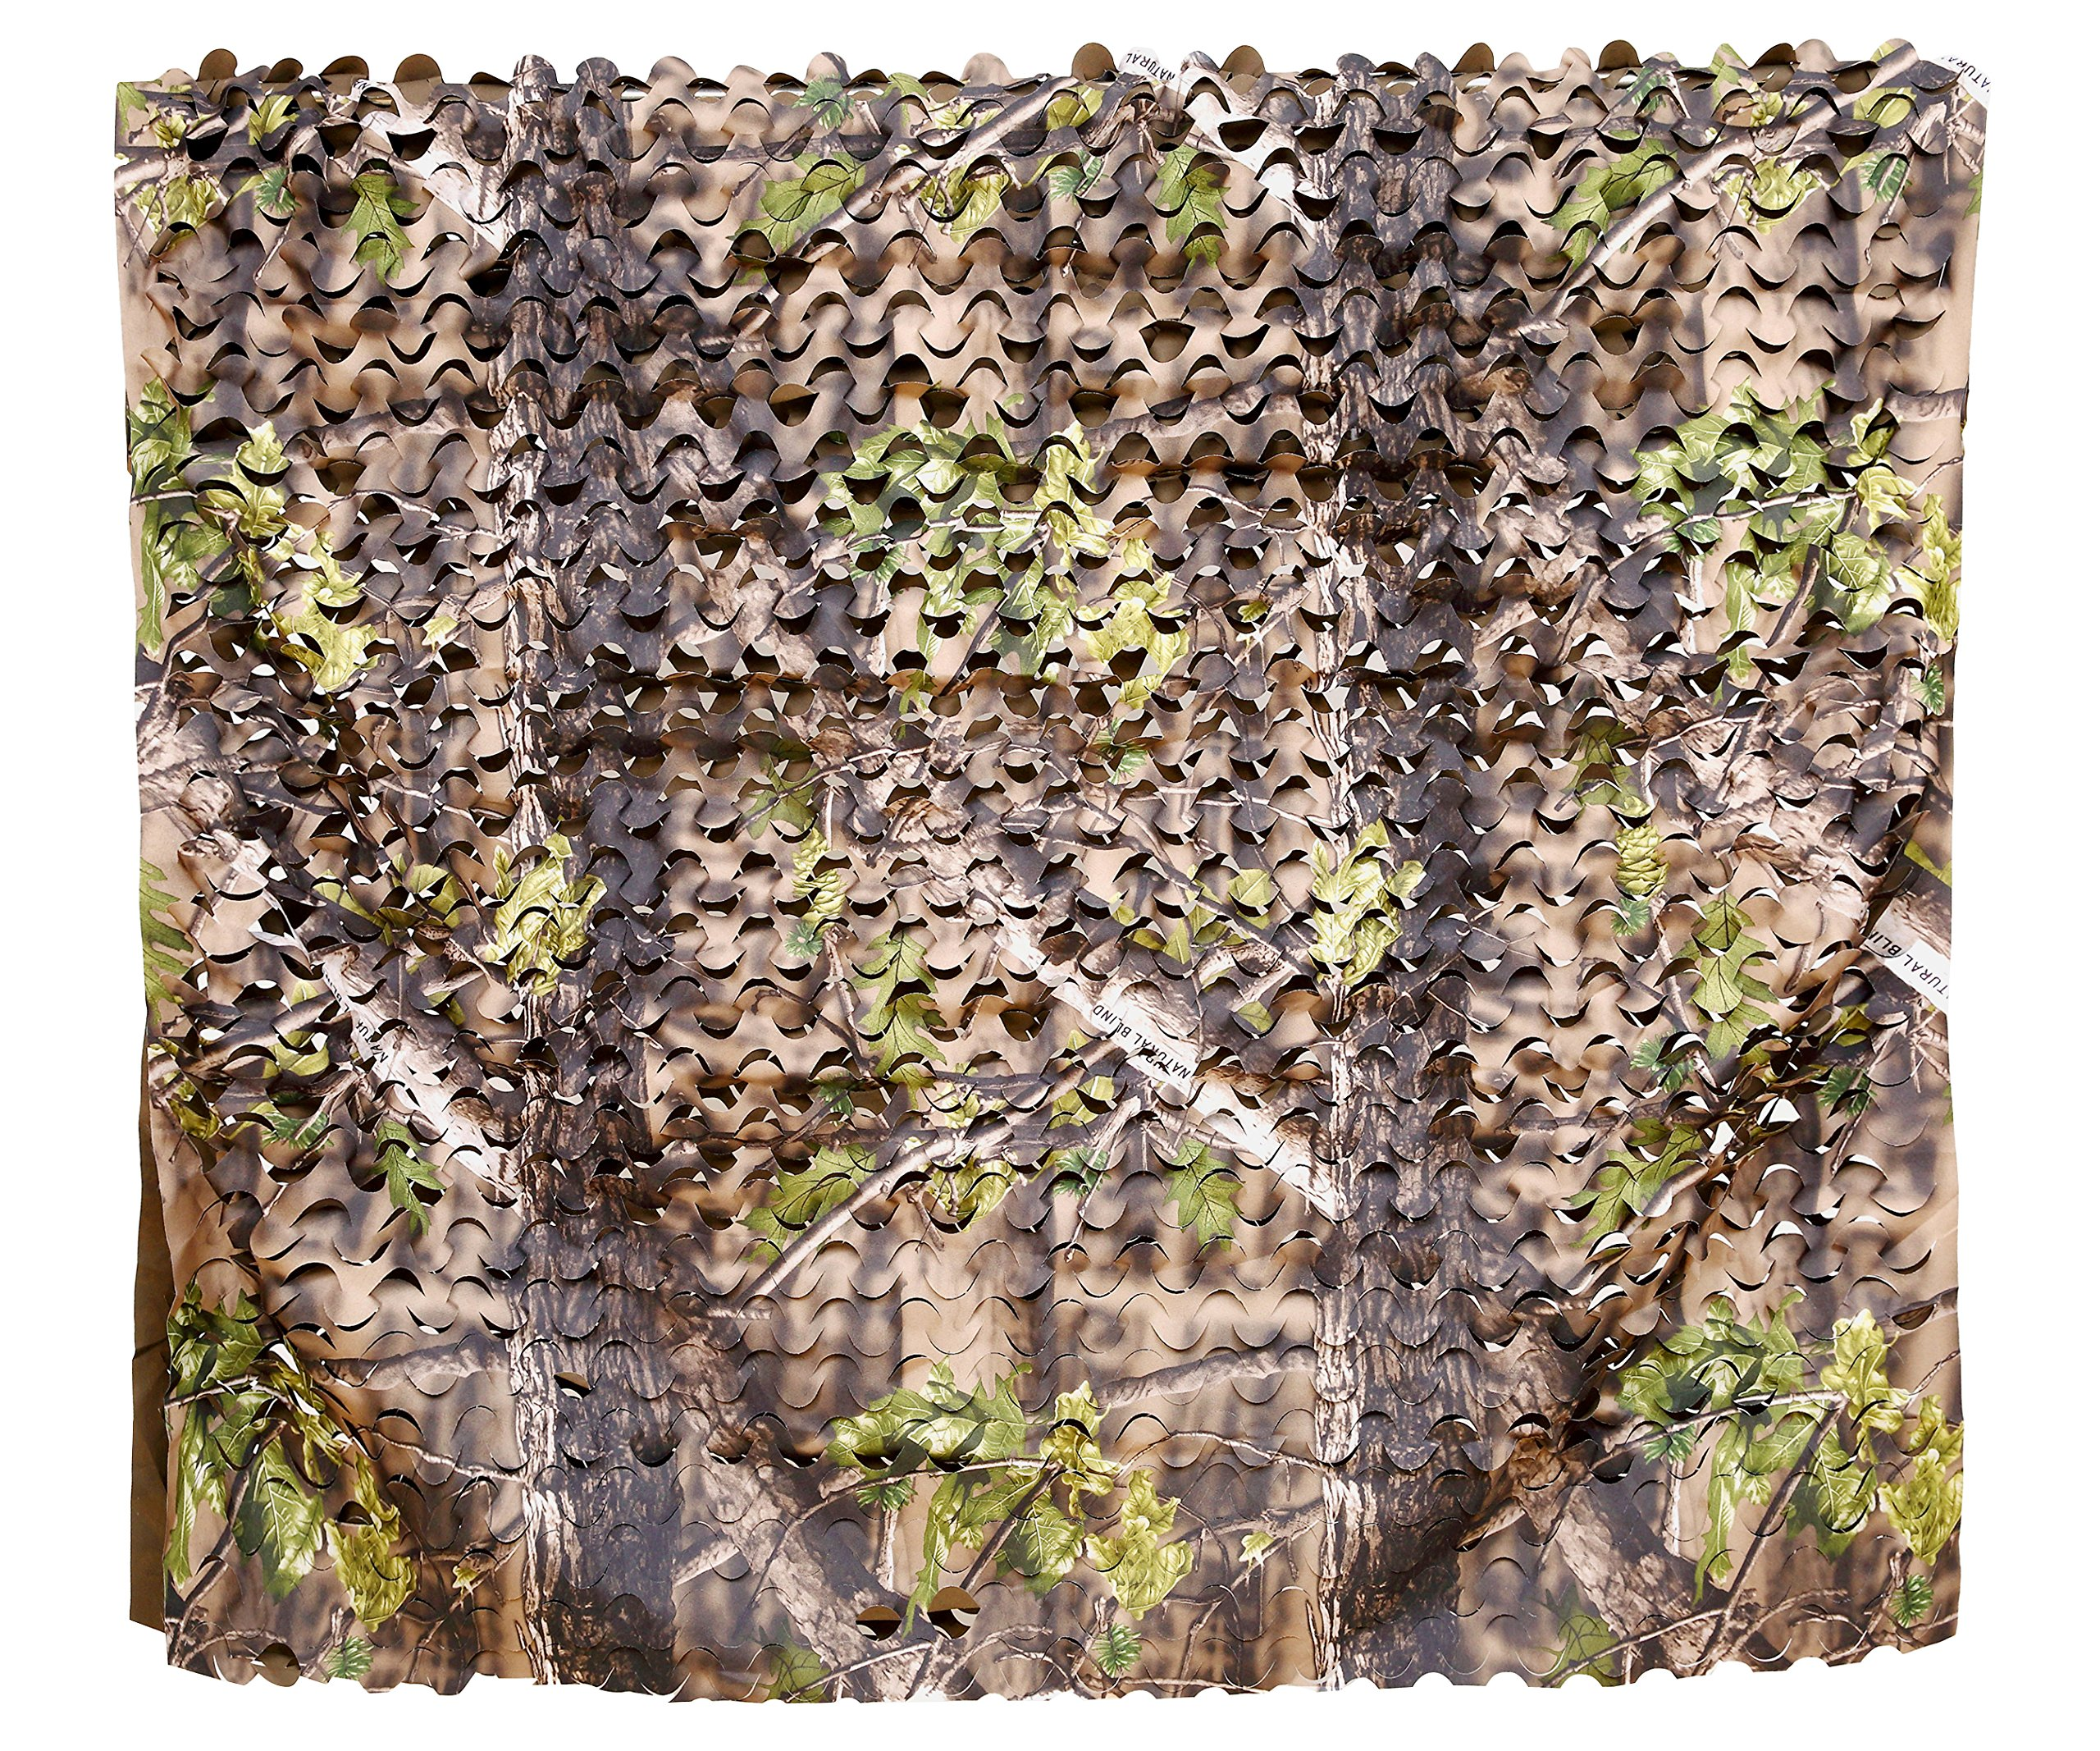 Auscamotek 300D Camo Netting Camouflage Nets Turkey Hunting Blinds Material for Ground Portable Blind Tree Stand - Green 5x6.5Ft